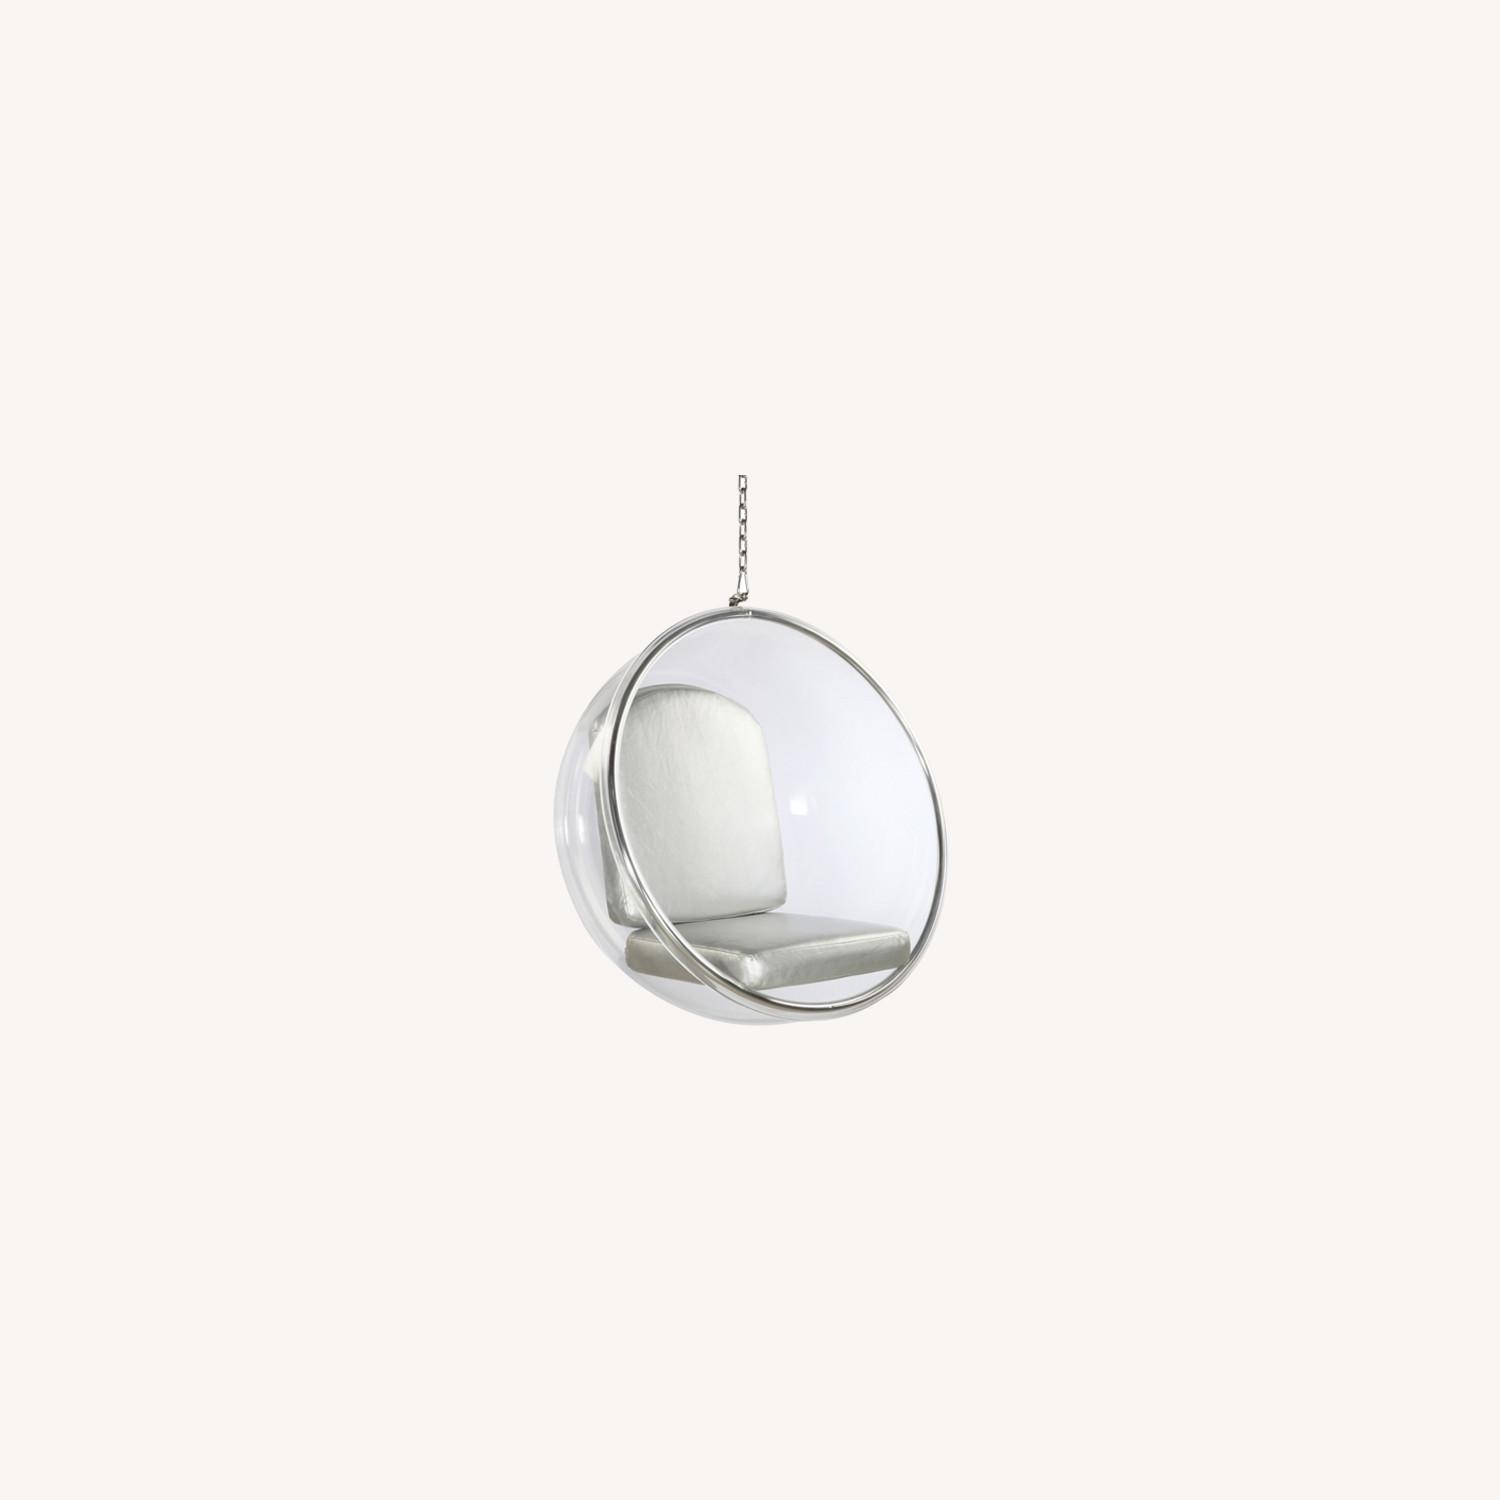 Hanging Chair In Clear Acrylic & Silver PU Leather - image-7